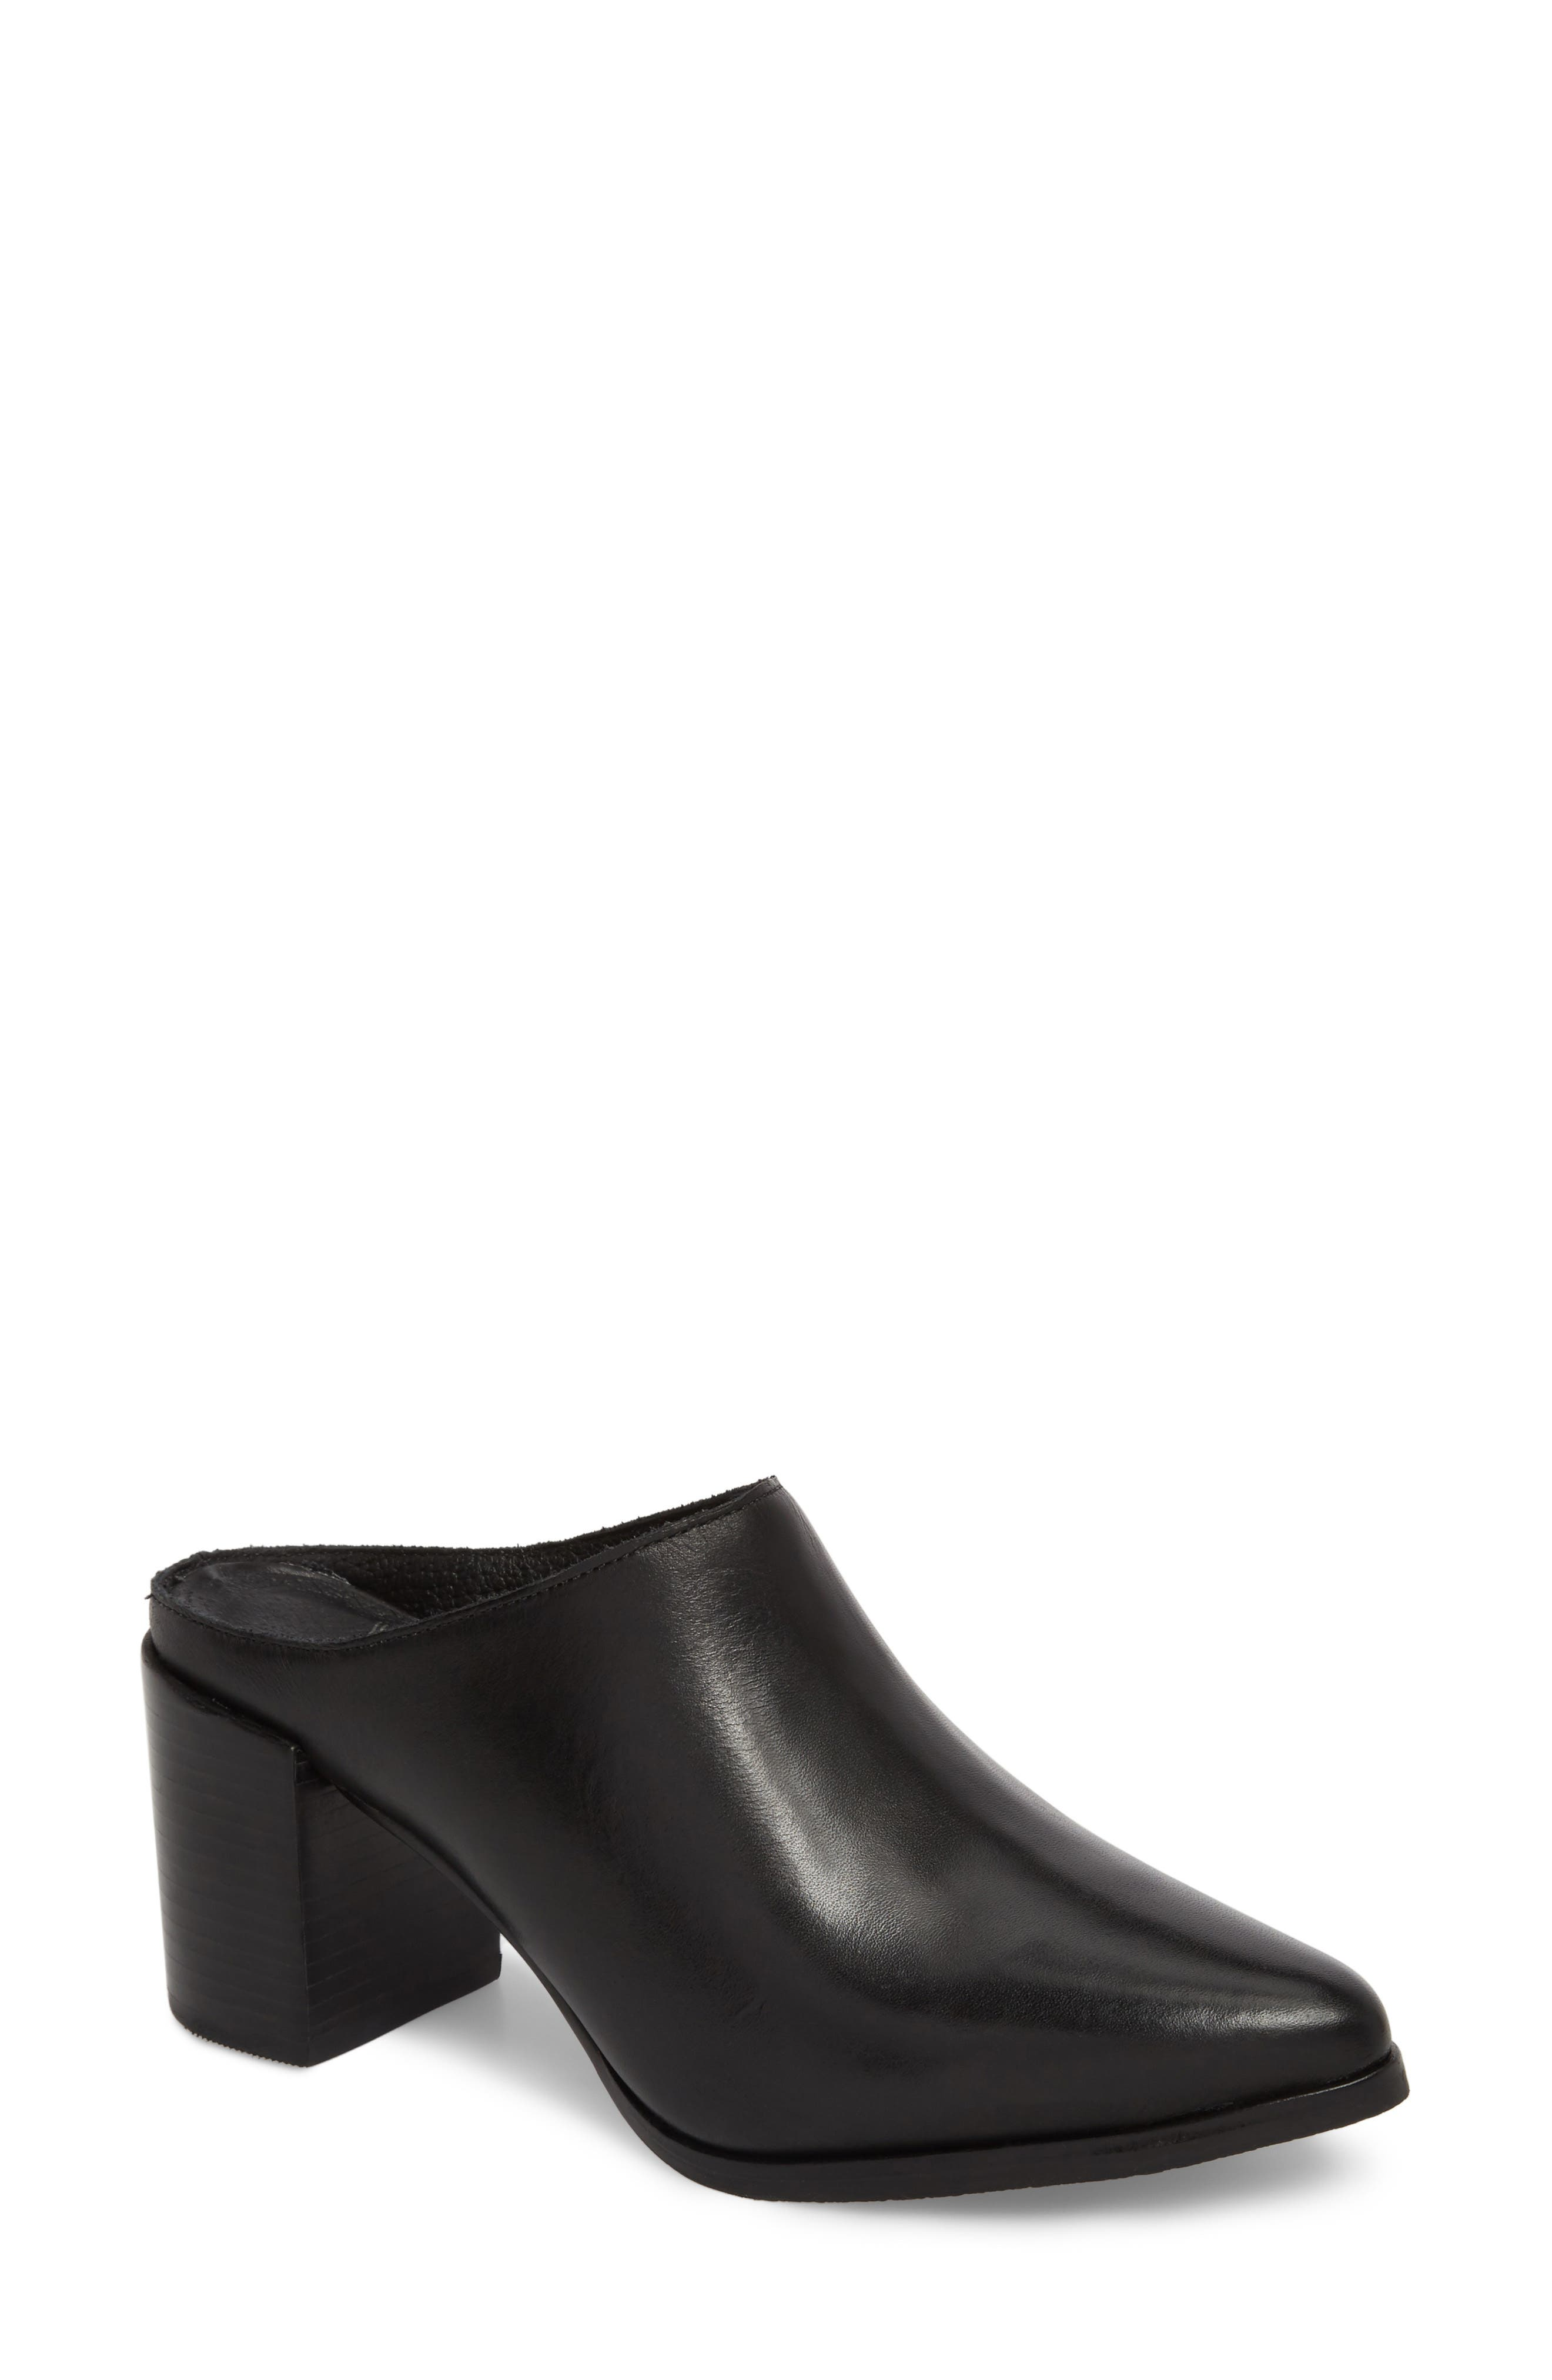 Amuse Society x Matisse Aria Mule,                         Main,                         color, BLACK LEATHER